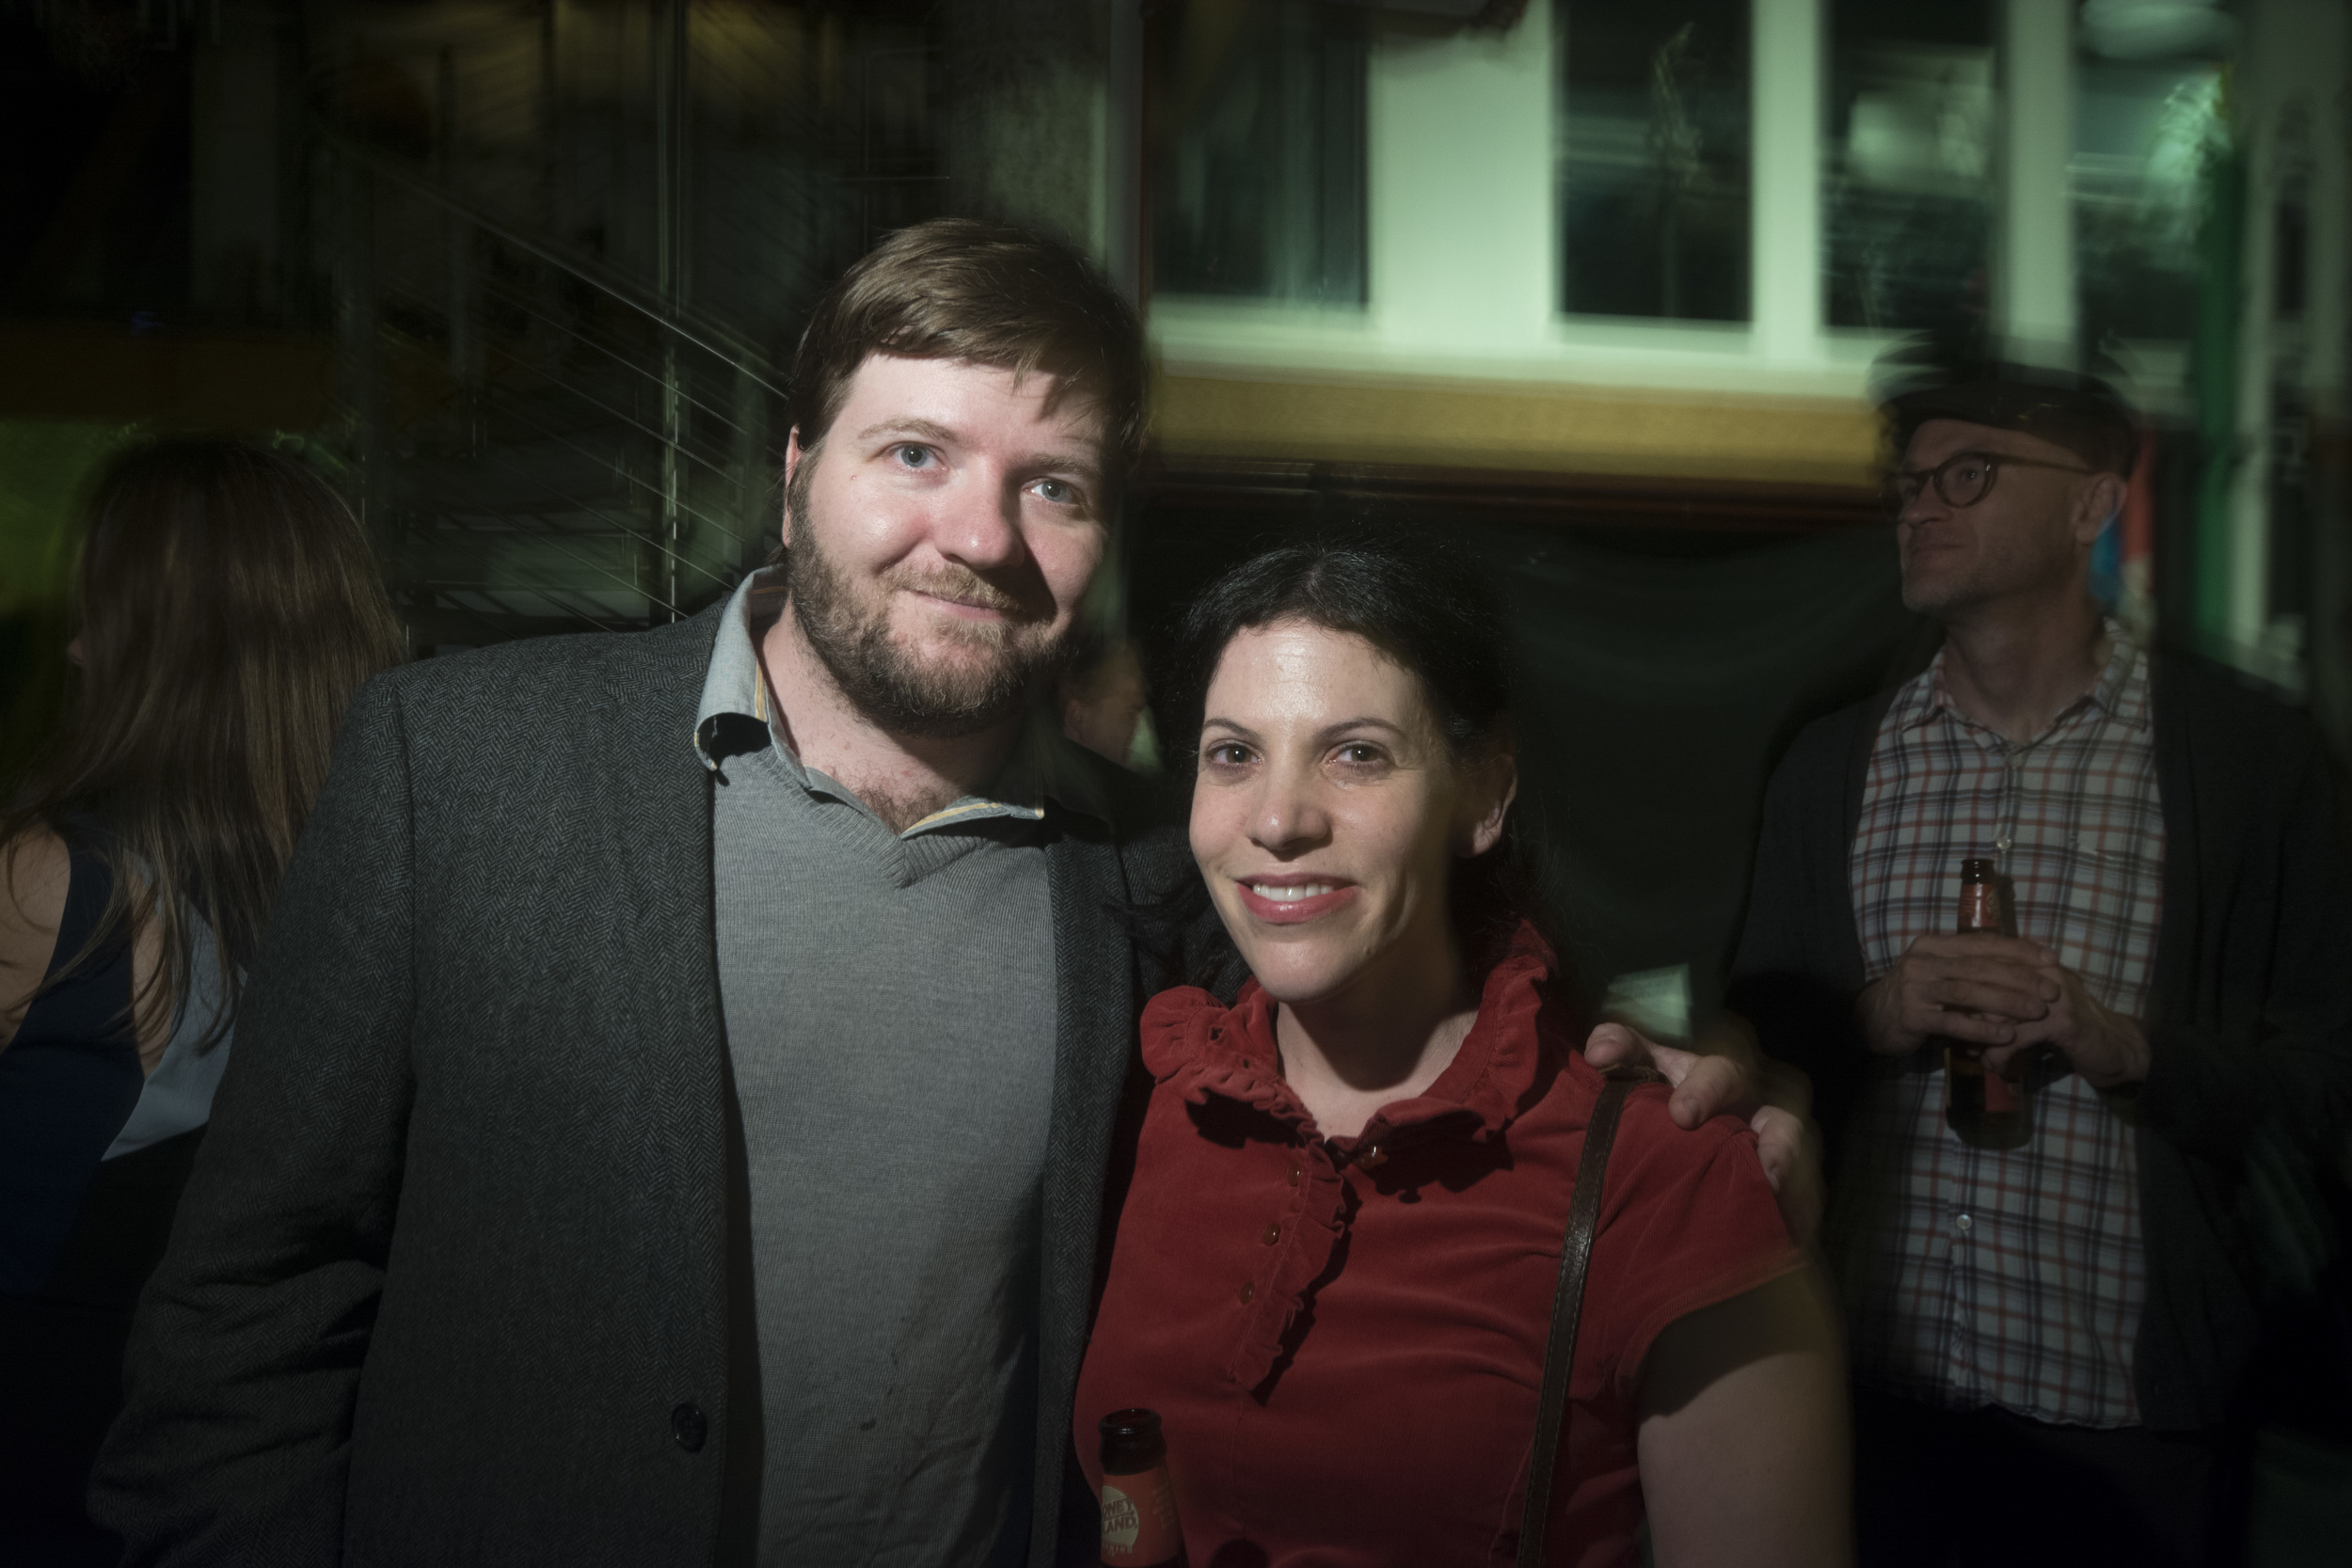 Colin Dickey and contributing filmmaker Nicole Antebi